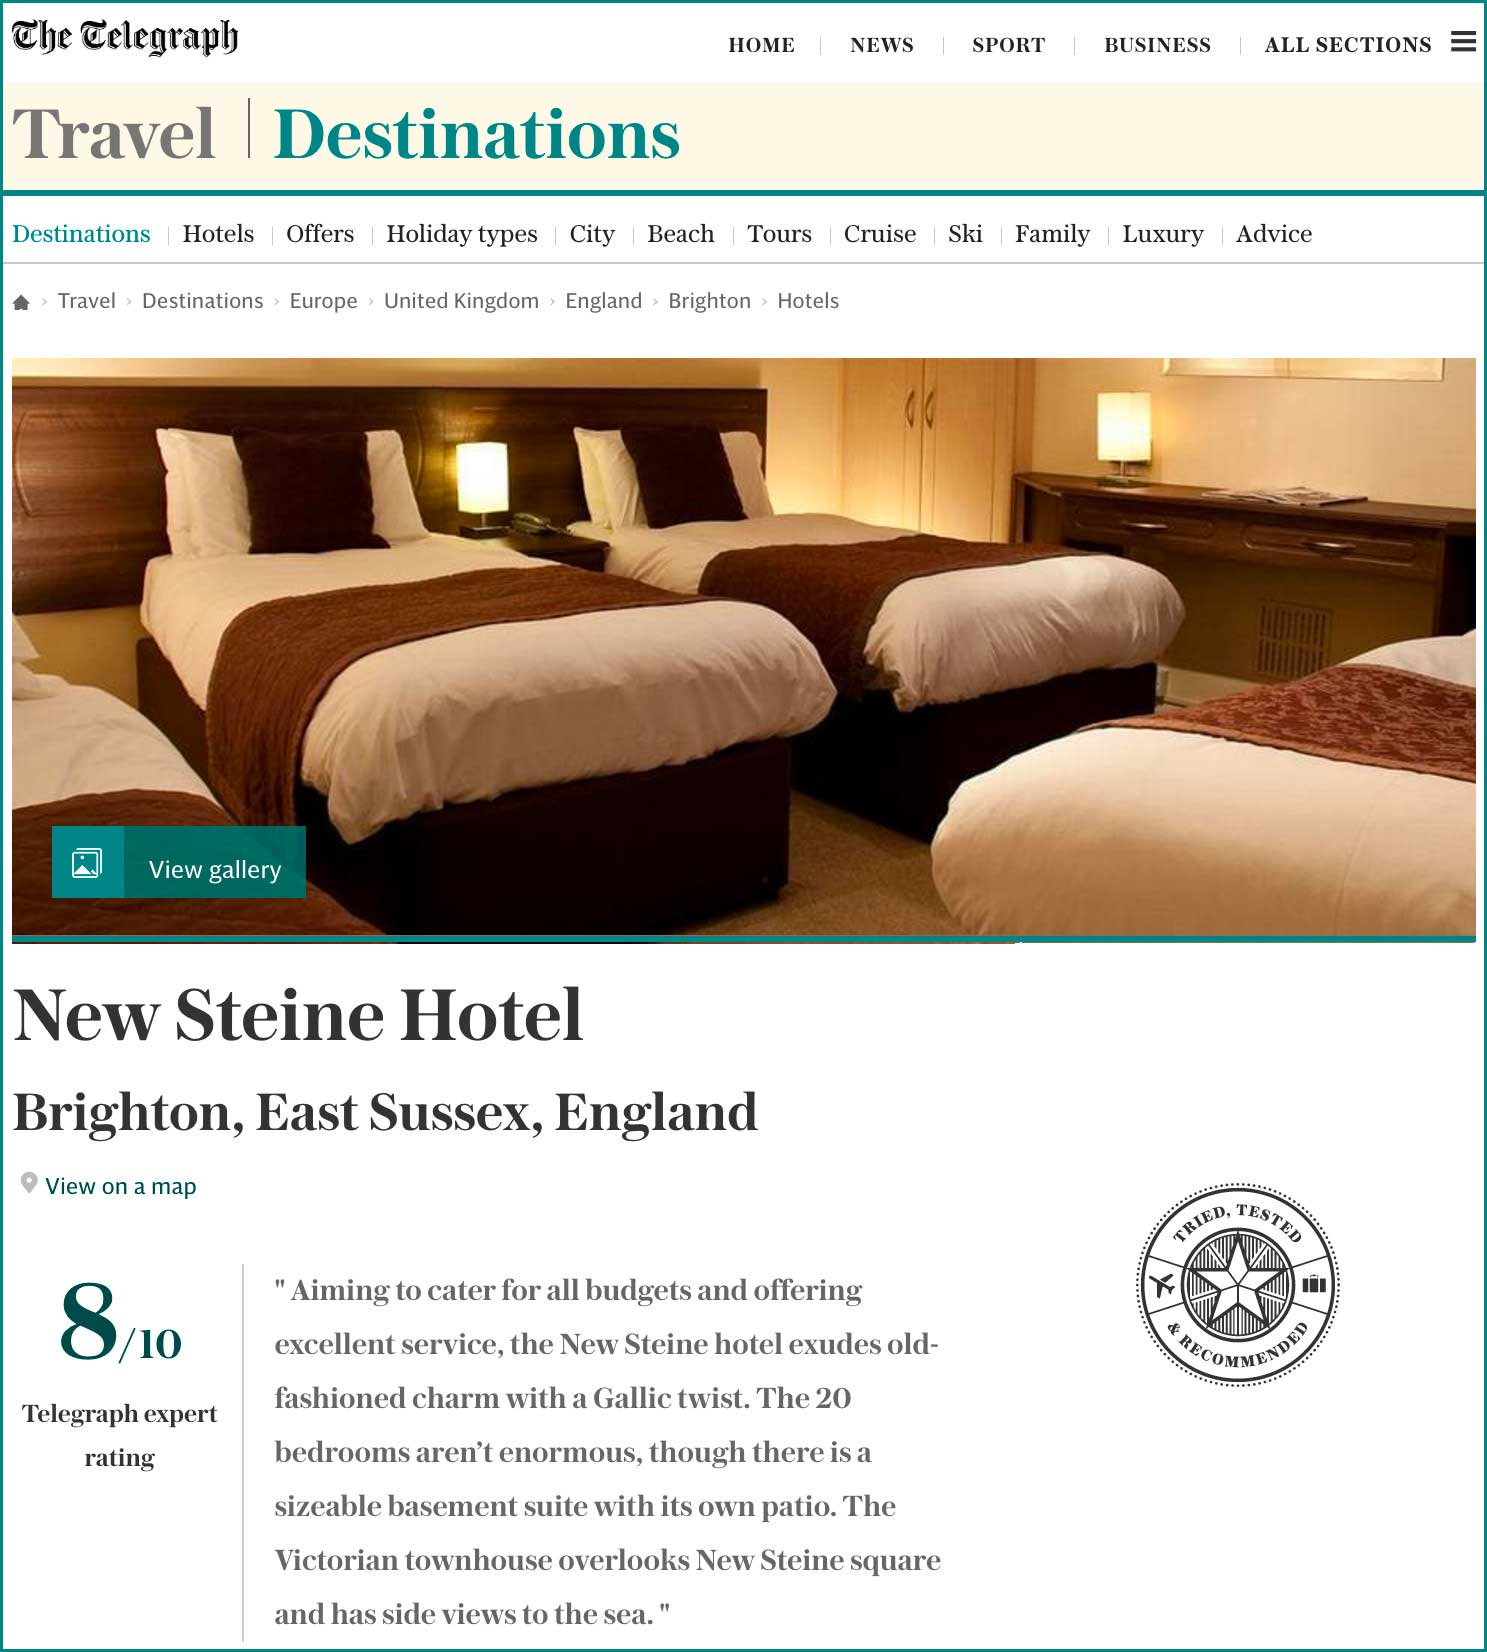 Telegraph Travel Destination – Brighton, New Steine Hotel, Spring 2017 – Read the review online here.